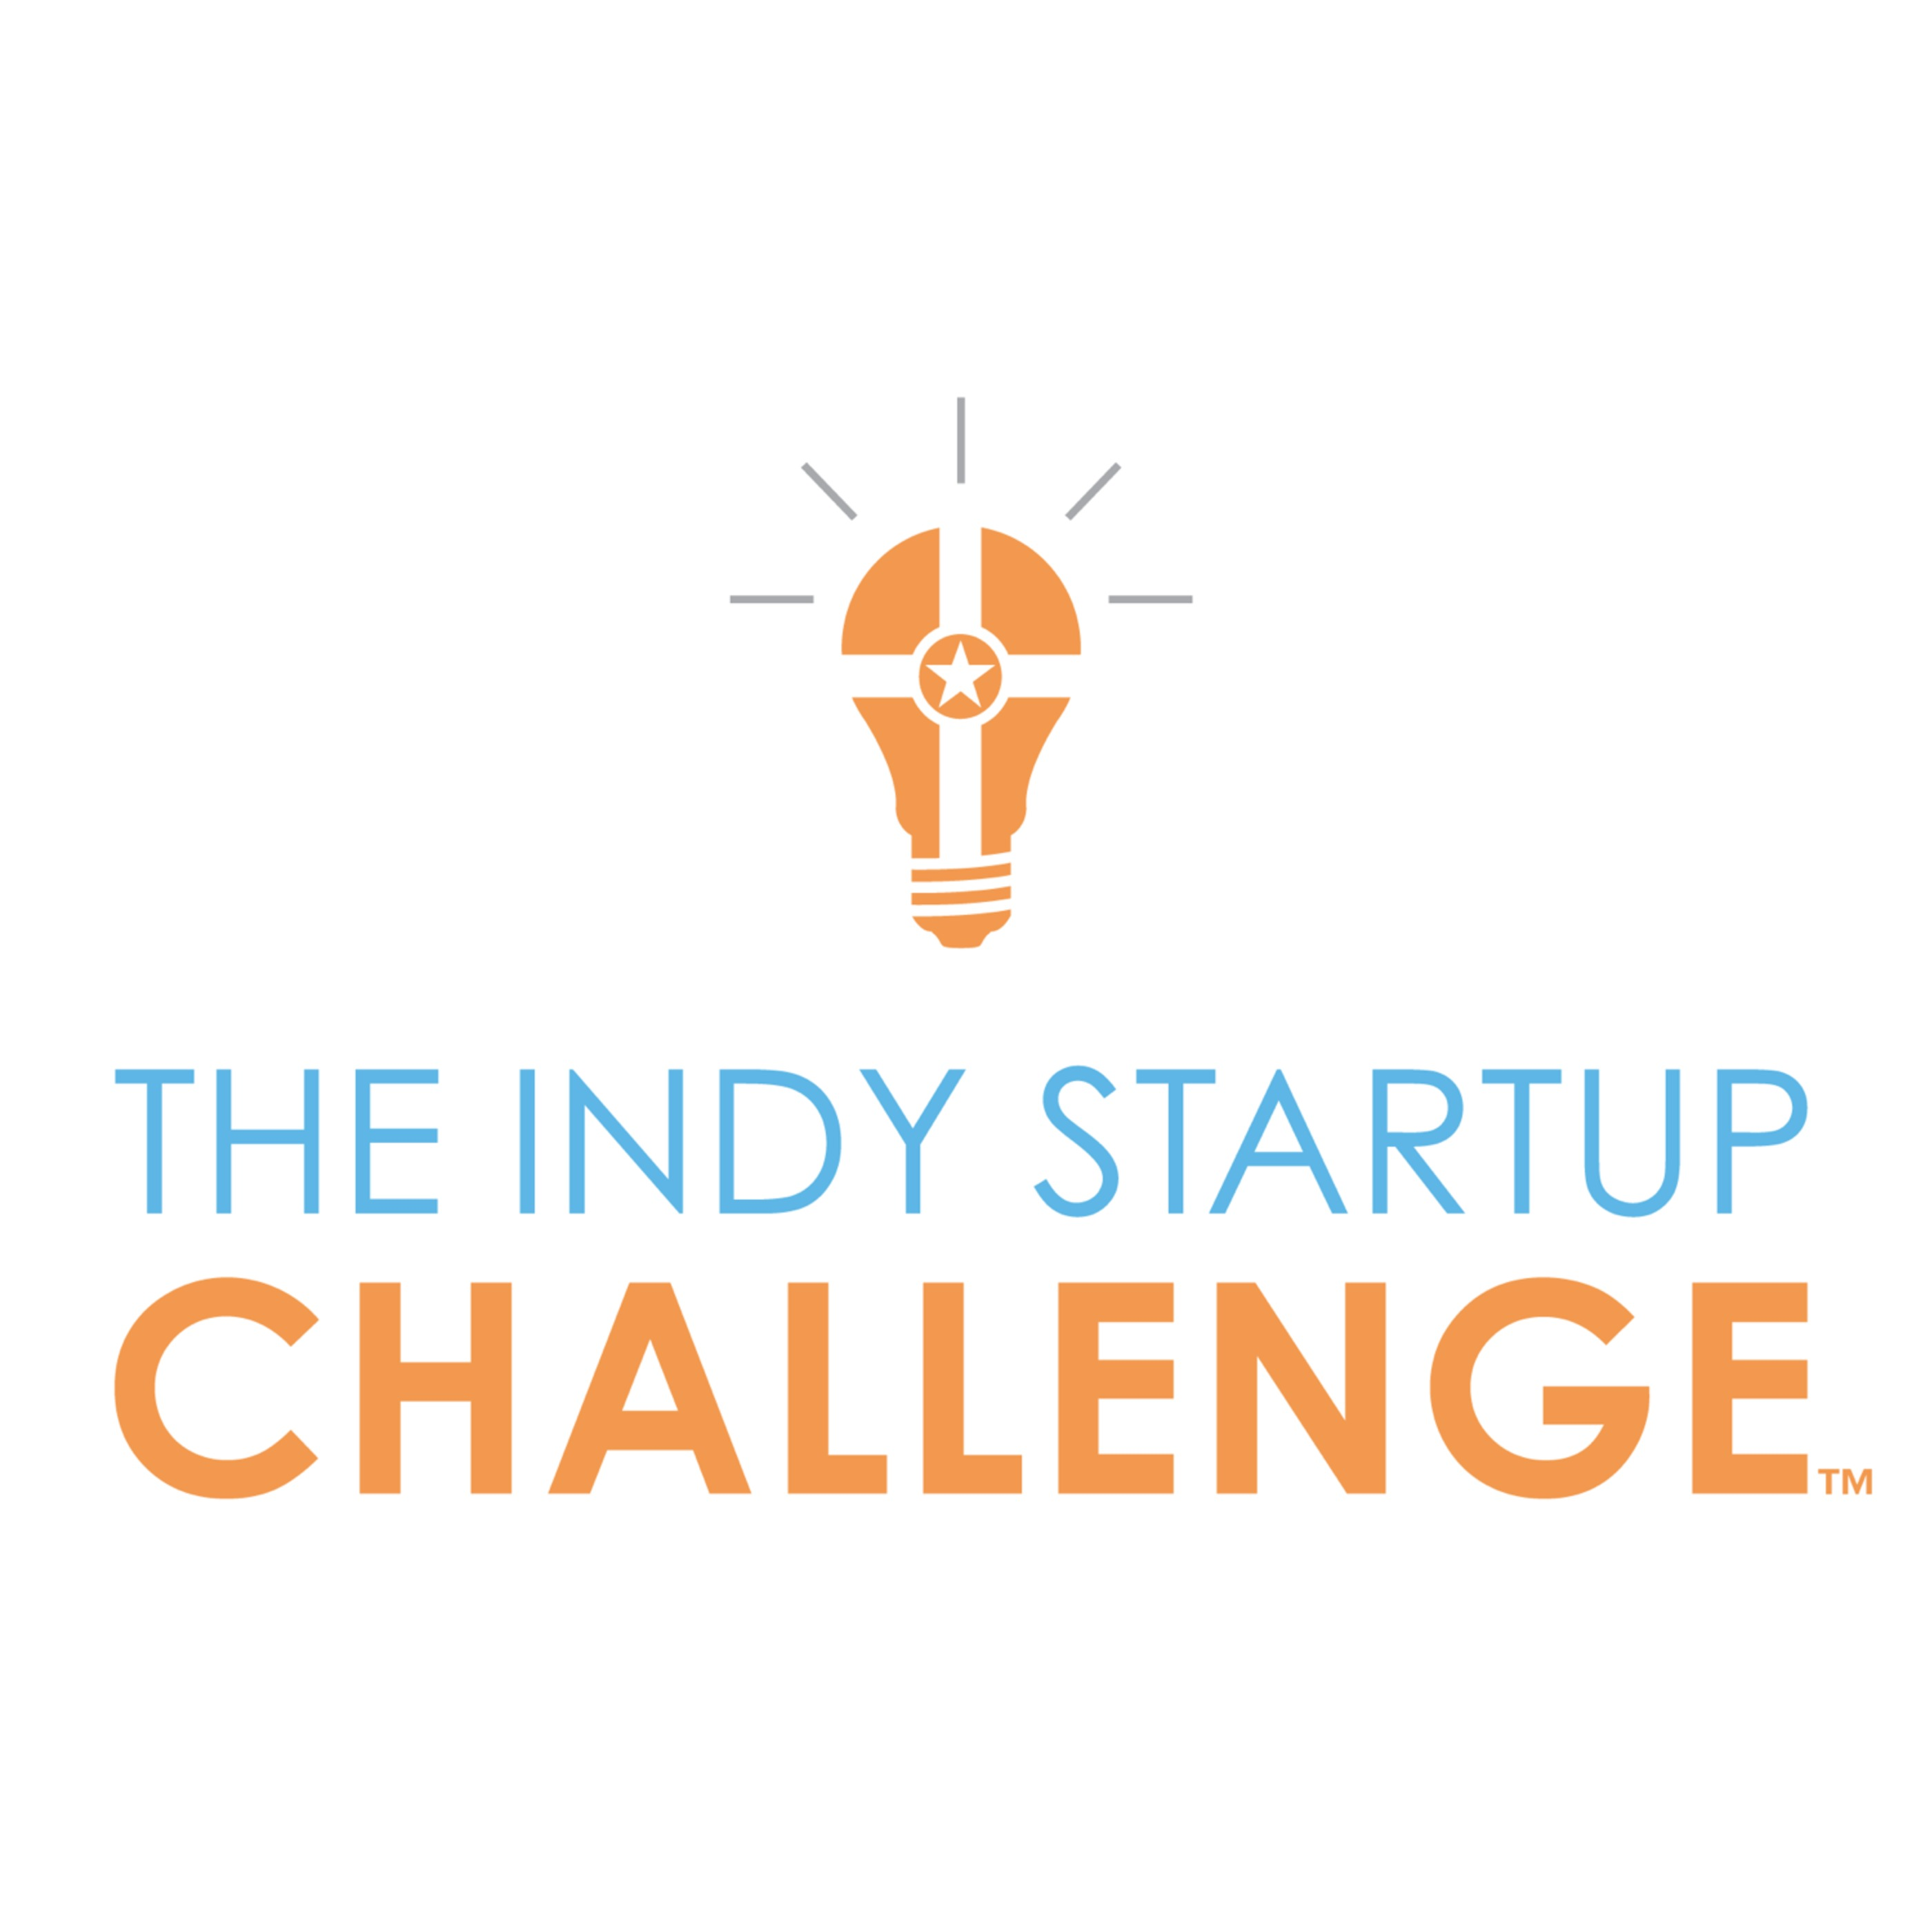 Listen to Episode 20: Startup Challenges... with The Indy Startup Challenge